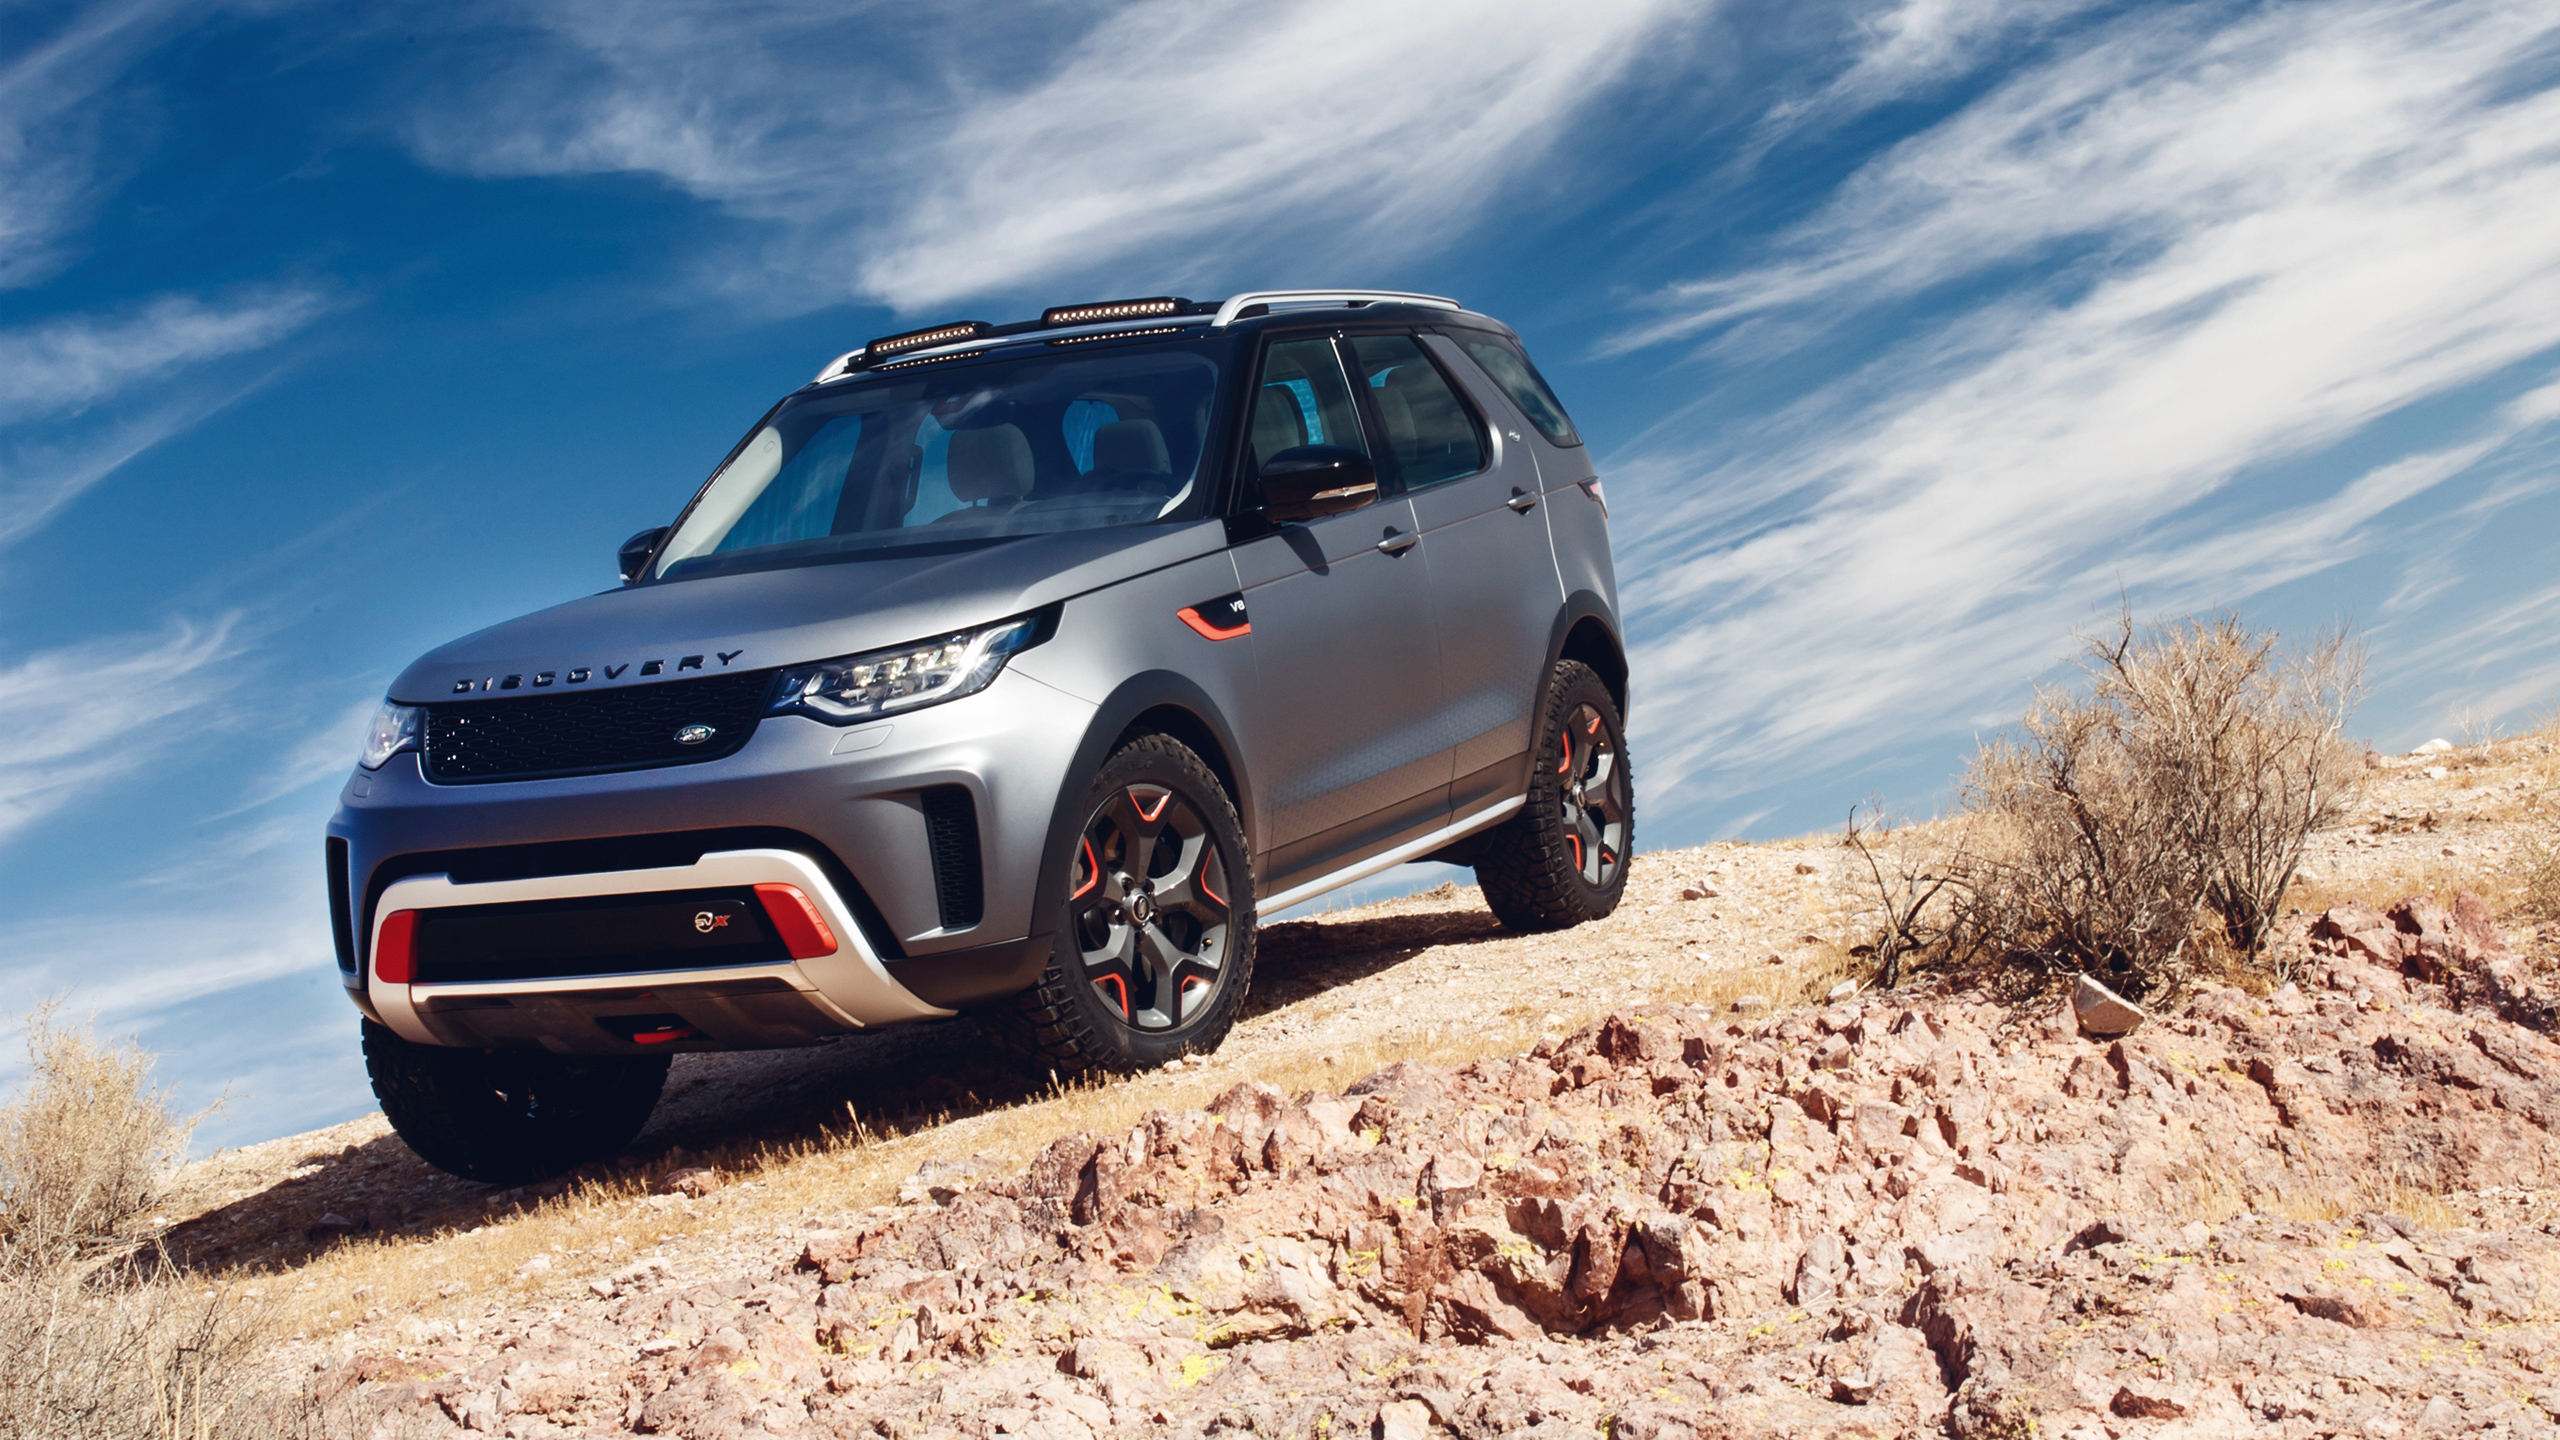 2018 Land Rover Discovery SVX 2 Wallpaper | HD Car ...